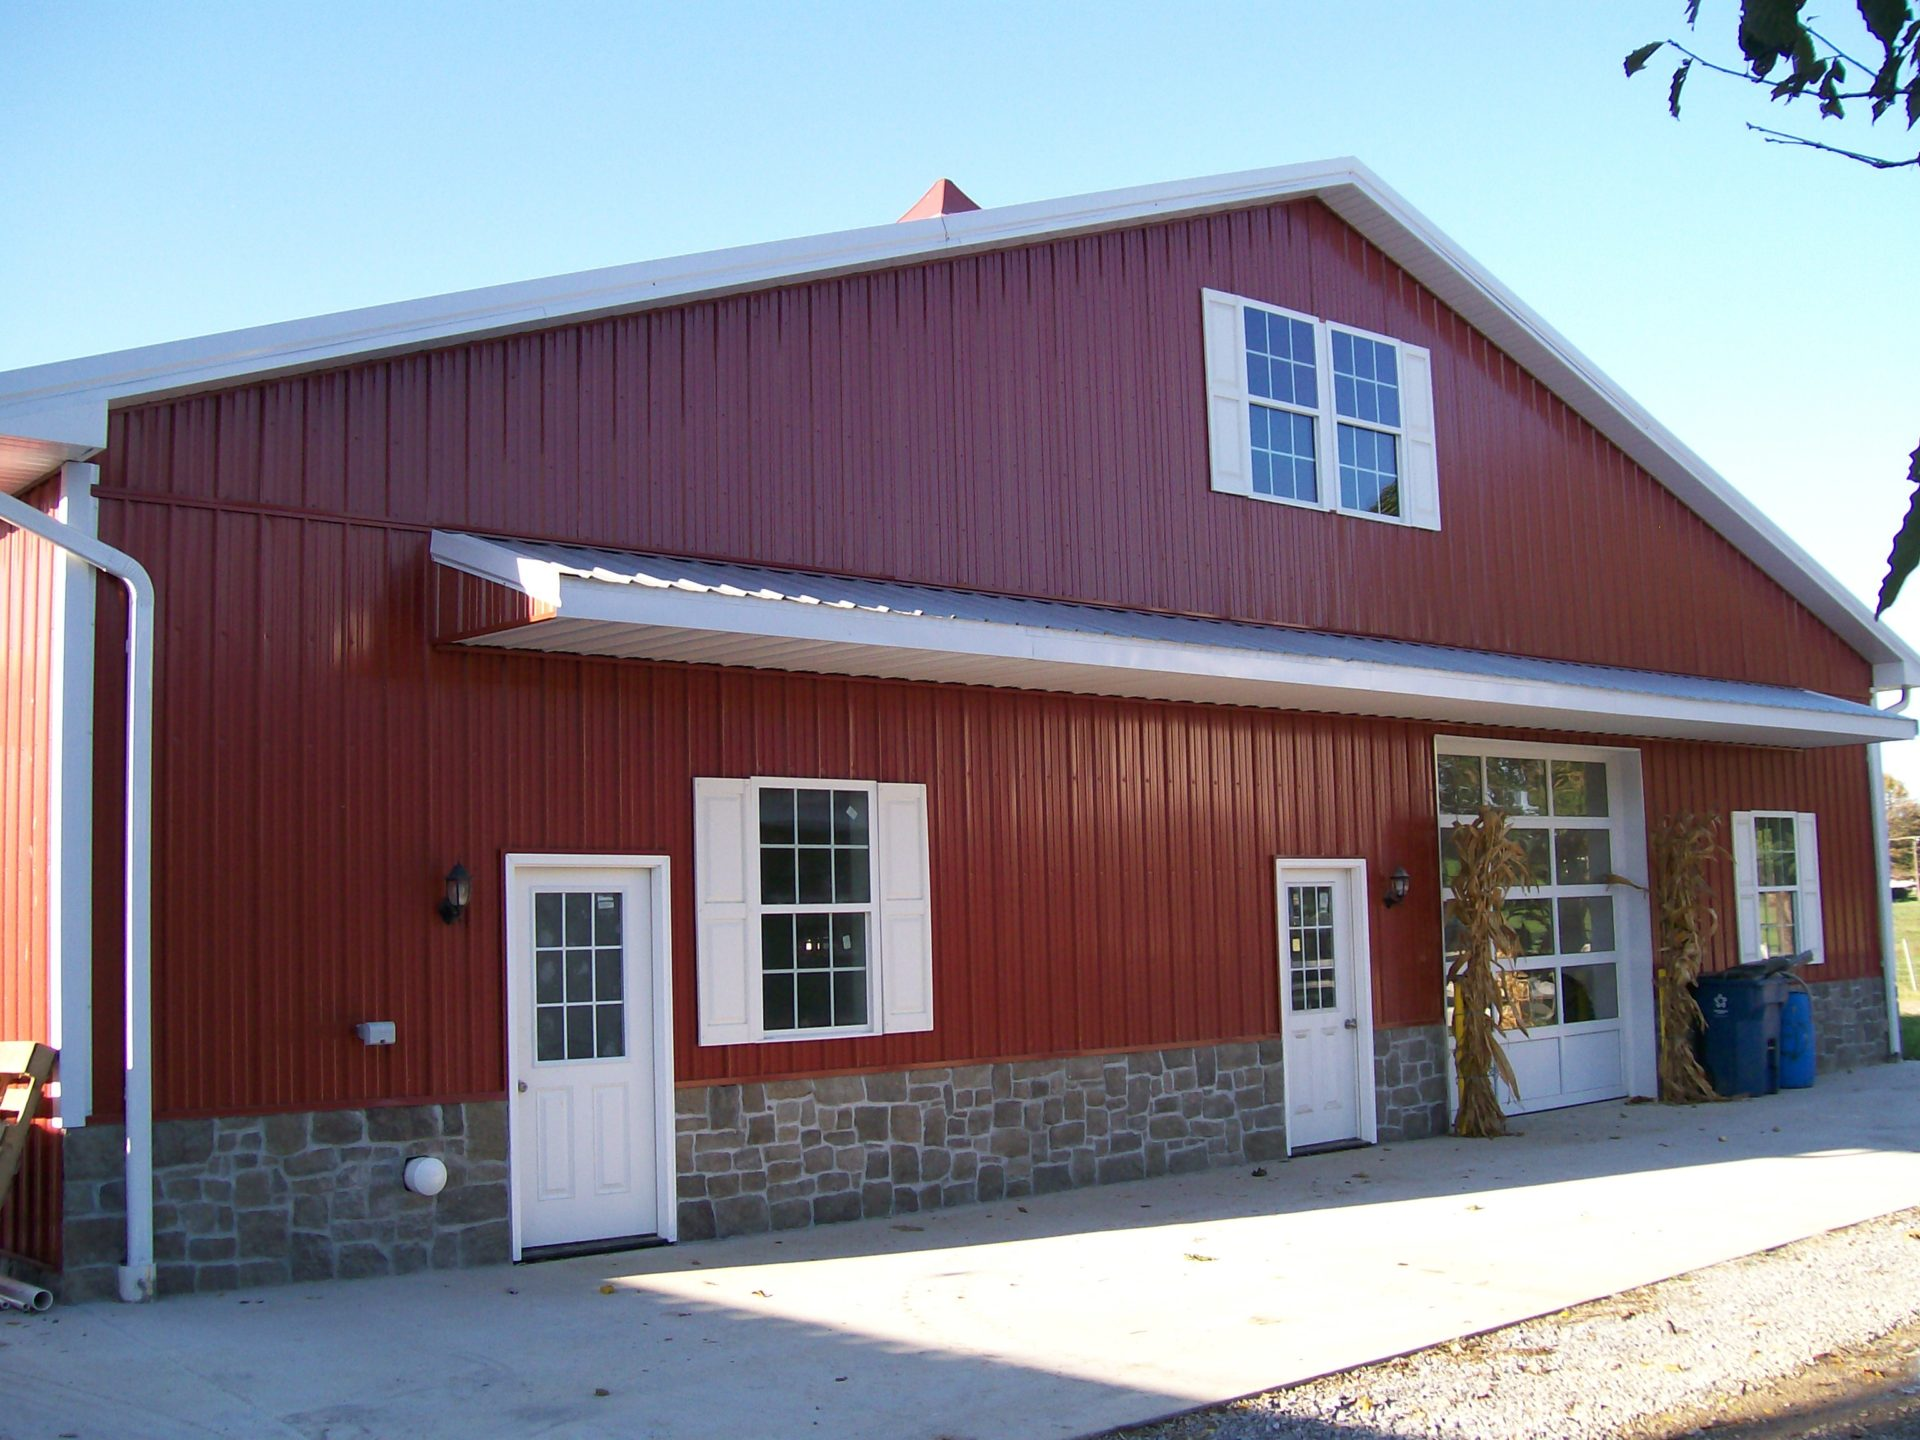 Barn plans for free for Dairy barn plans